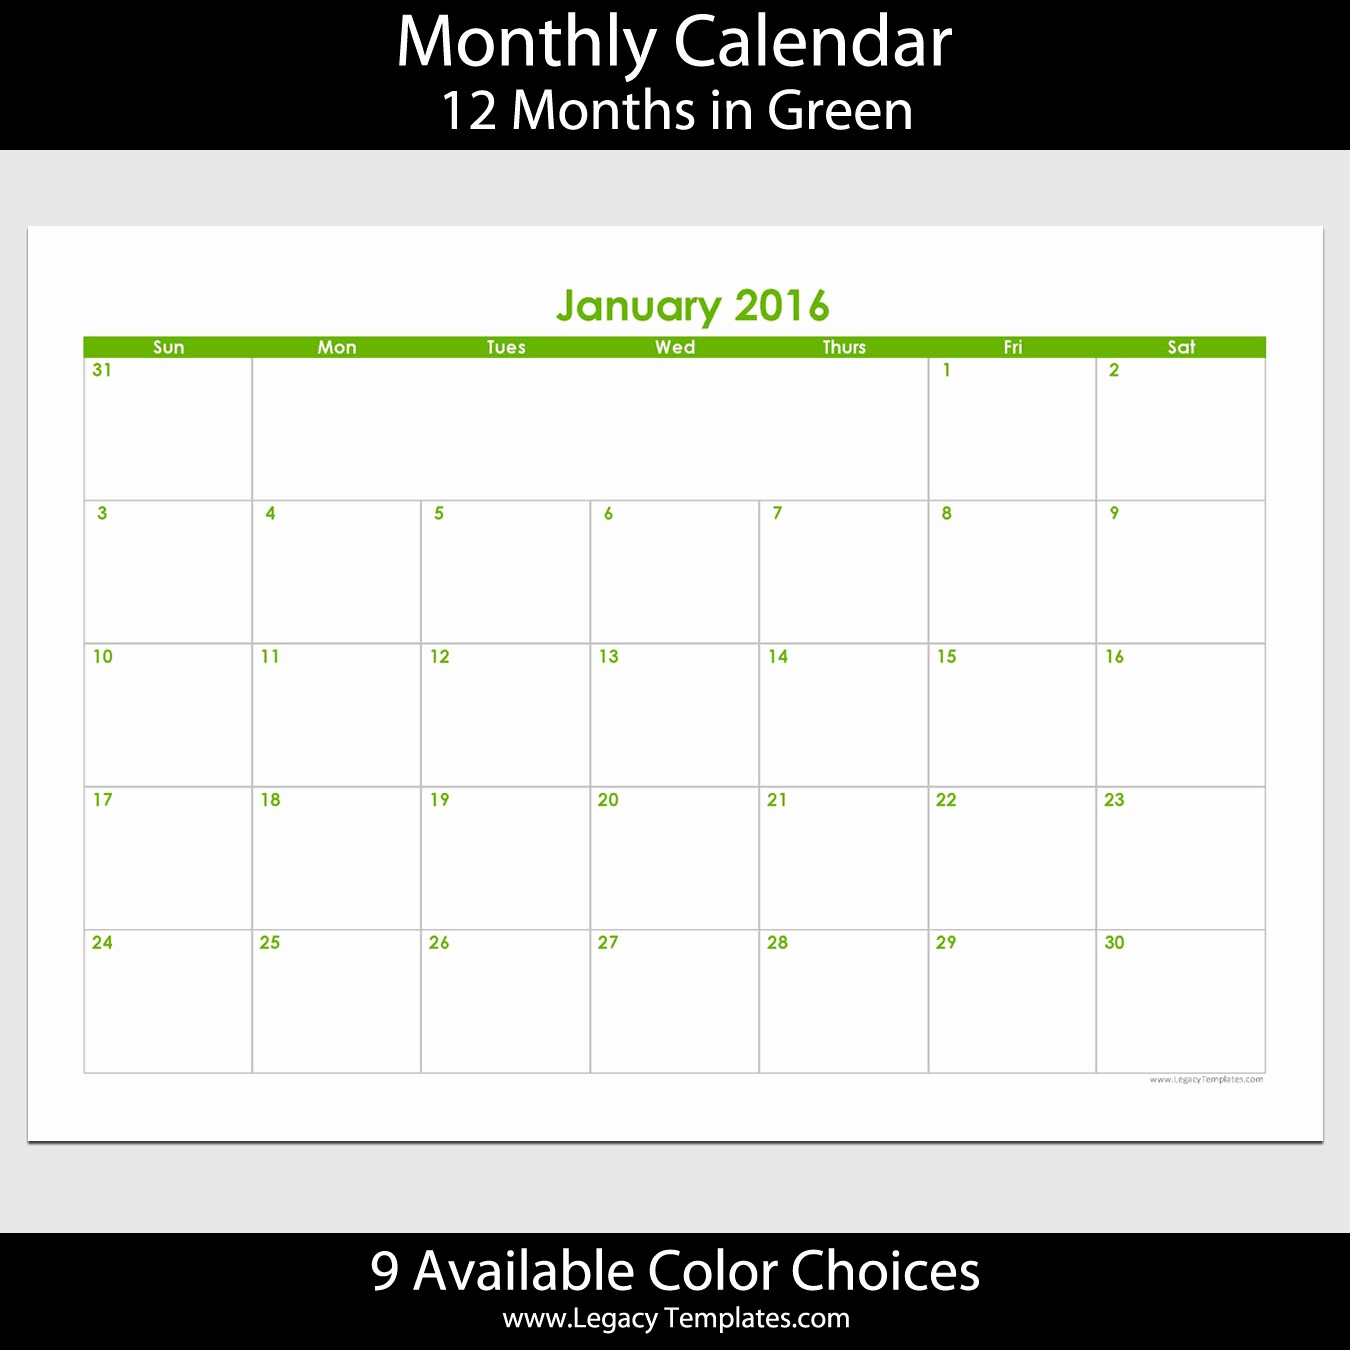 2016 12 Month Calendar Printable Unique 2016 12 Month Landscape Calendar – A5